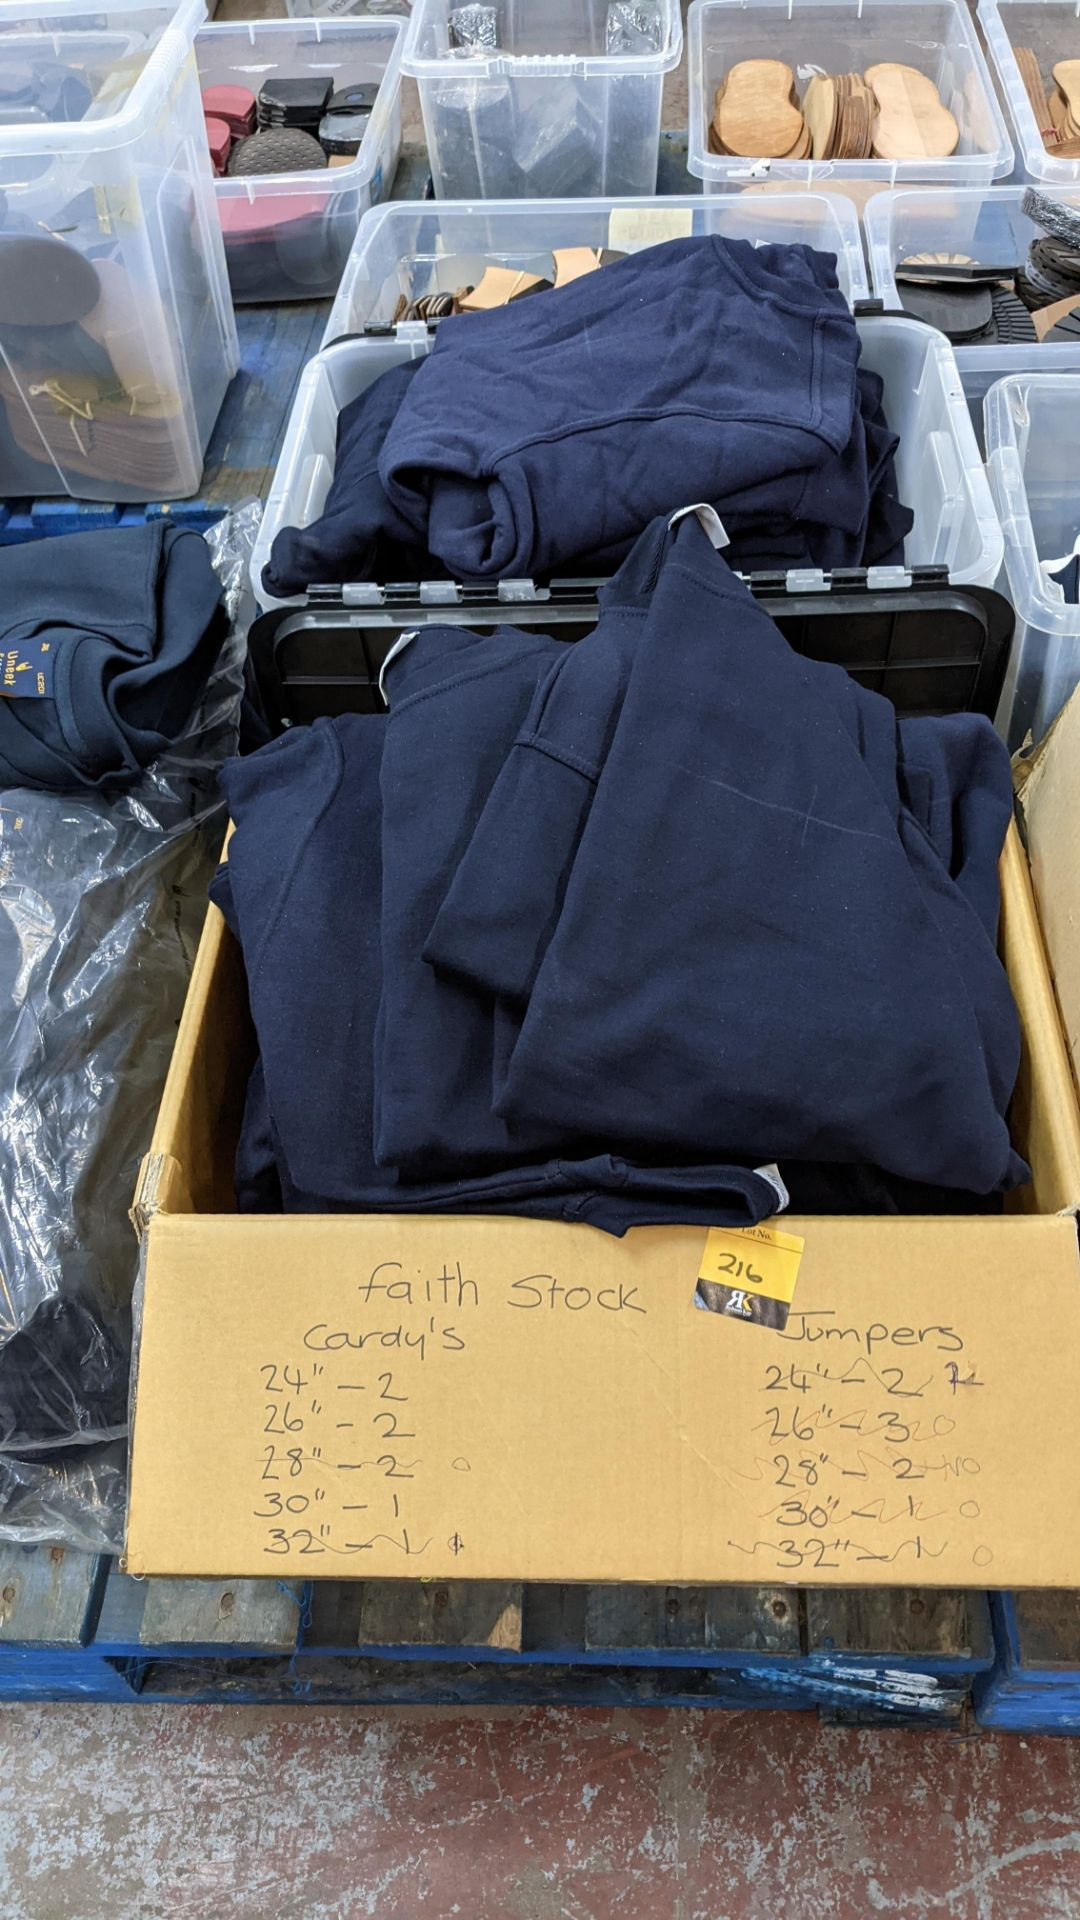 Approx 26 off Absolute Apparel blue sweatshirts - the contents of 2 boxes/crates. NB boxes/crates e